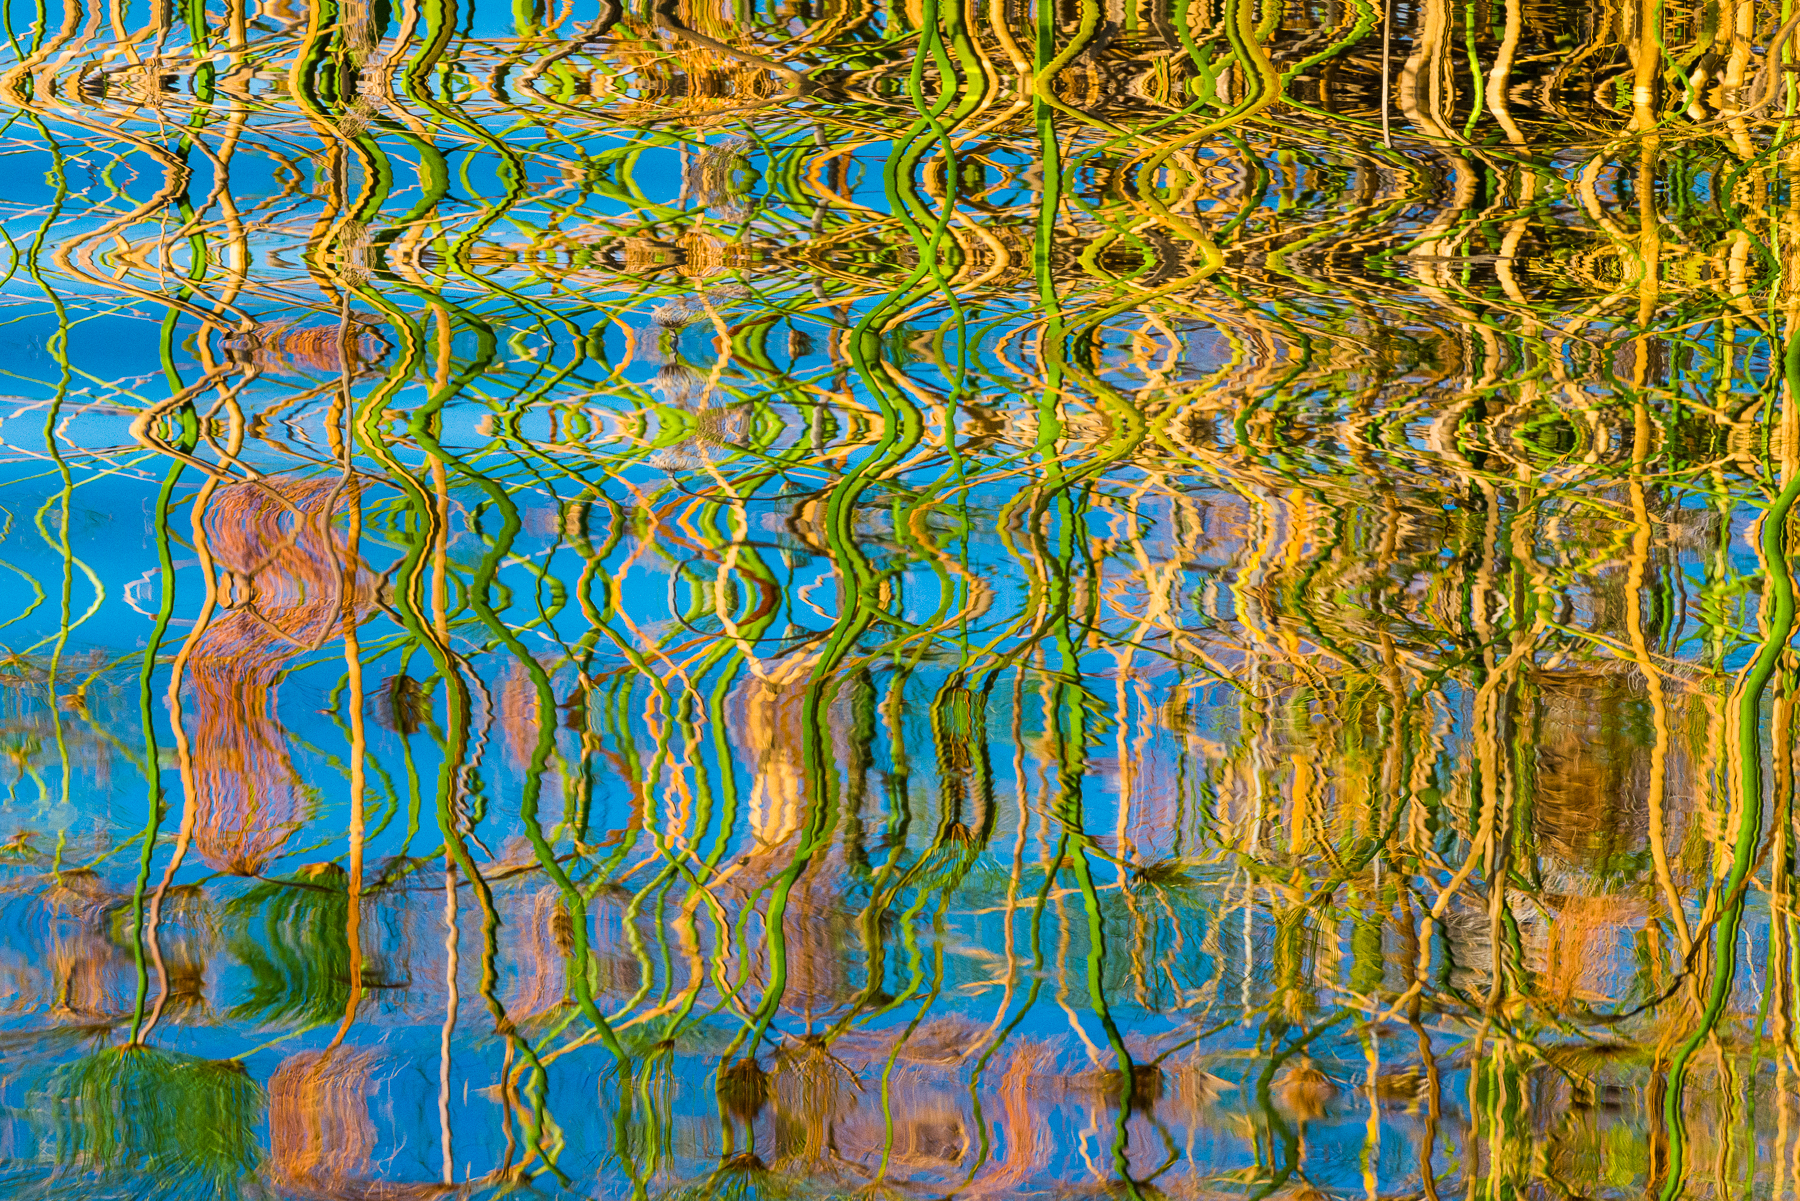 Papyrus reflections in water, Botswana